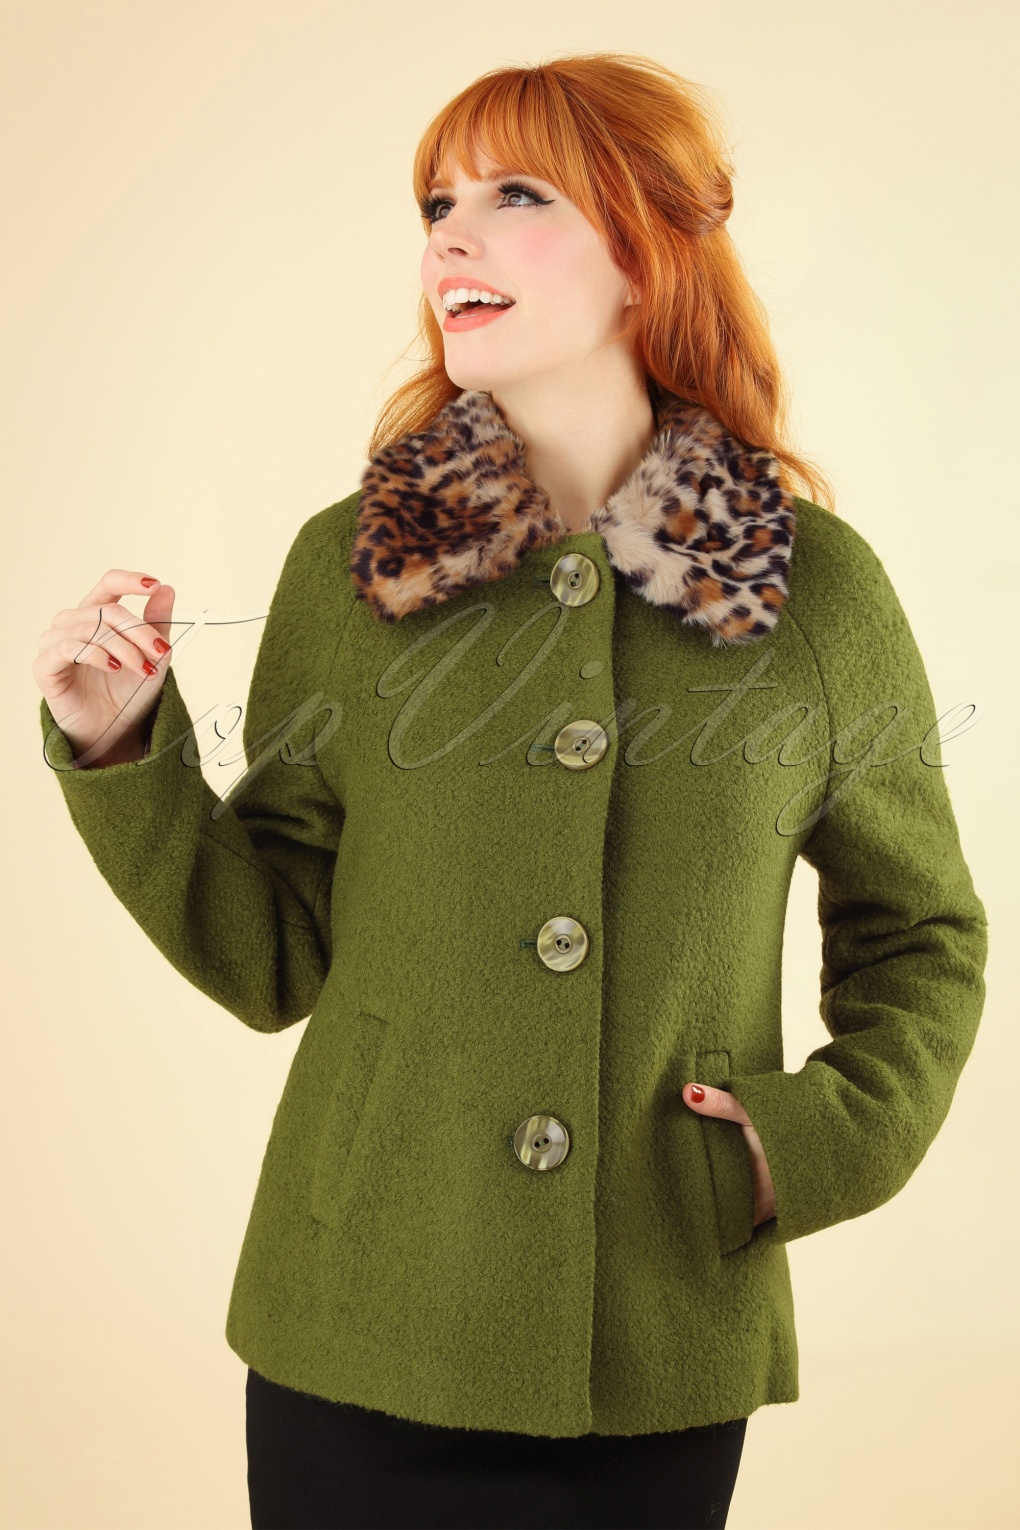 1960s Style Dresses, Clothing, Shoes UK 60s Loretta Razzmataz Coat in Posey Green £67.49 AT vintagedancer.com